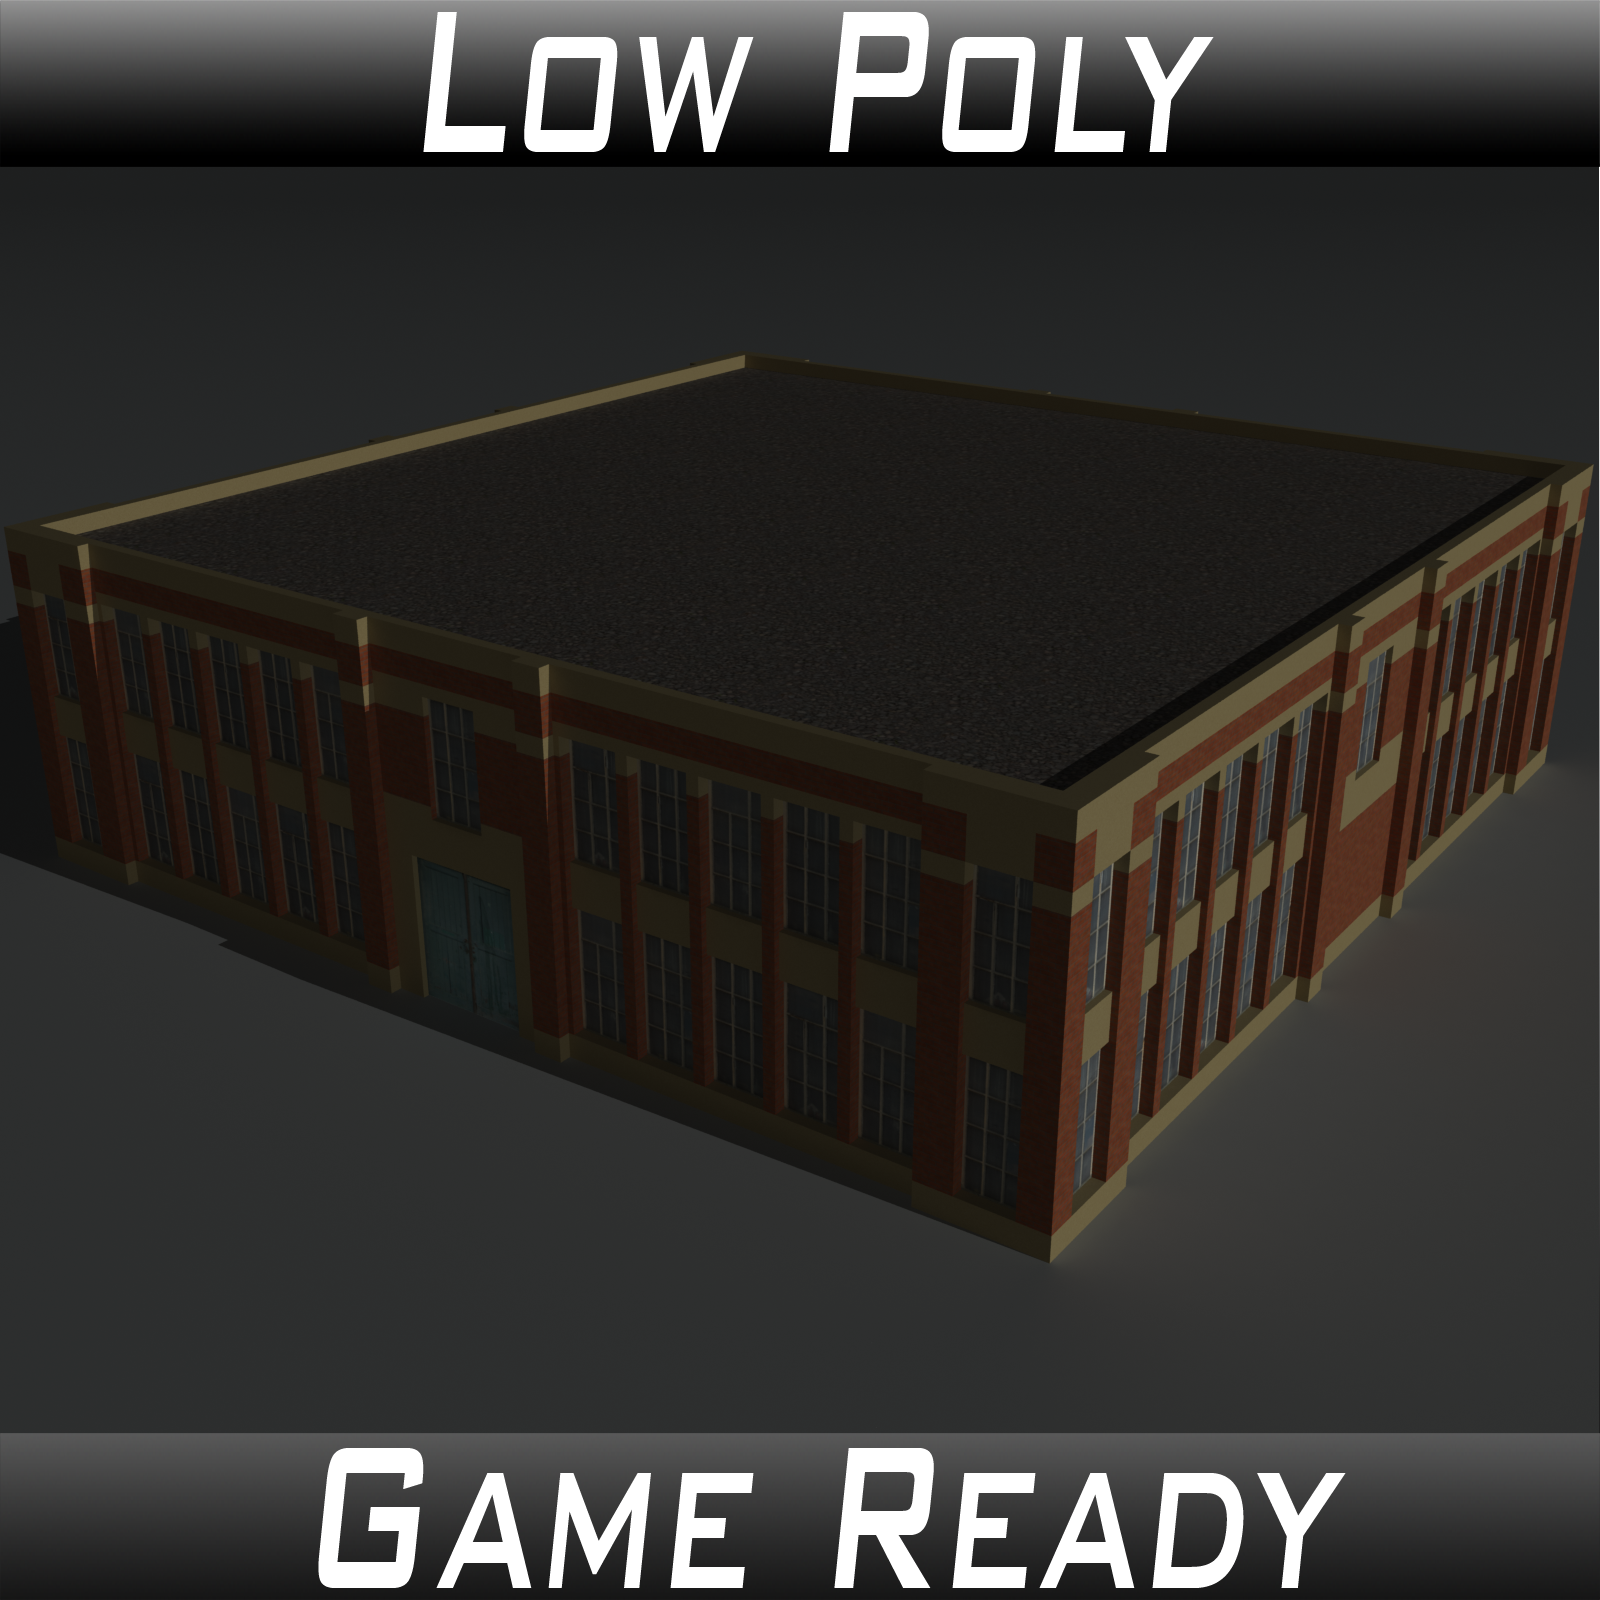 Low Poly Factory Building 6 - Extended Licence by 3dlands